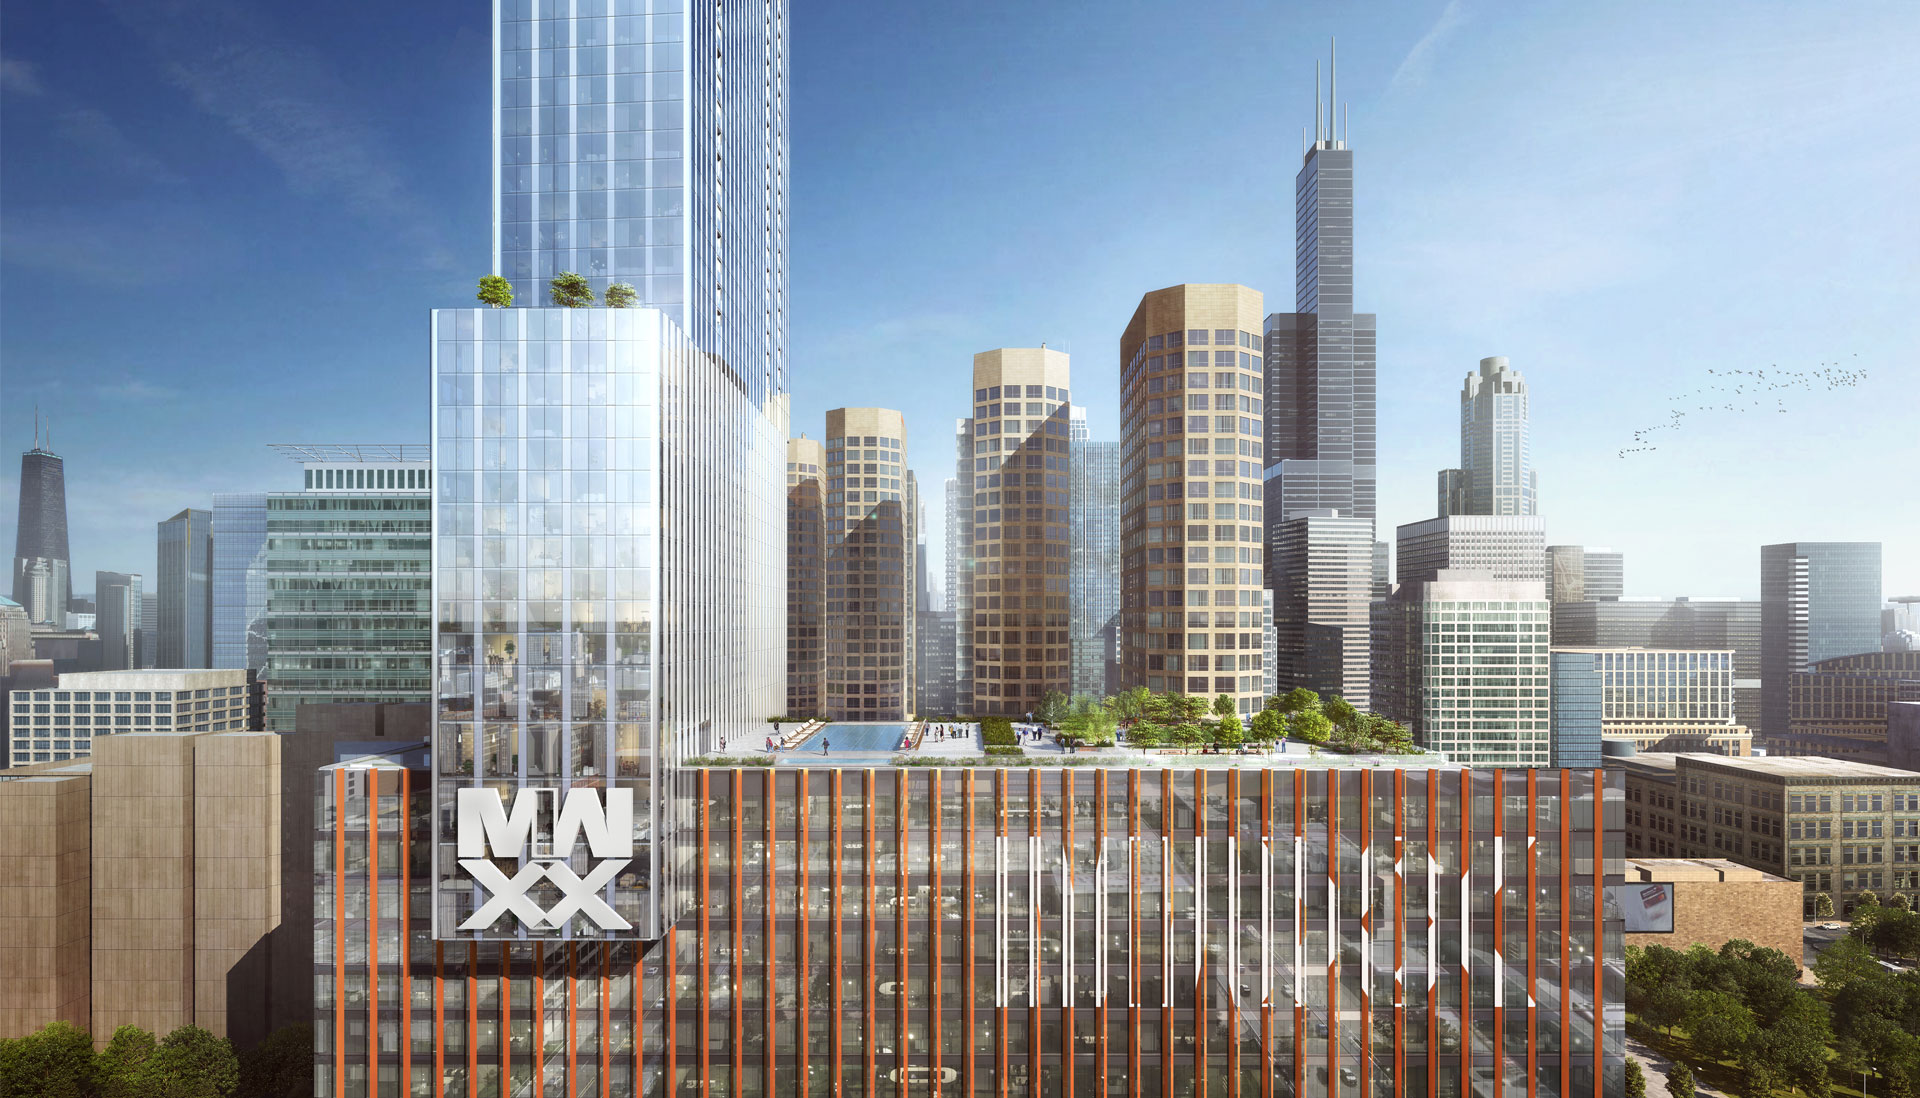 Designers at bKL Architecture envision 63-story tower for prominent downtown lot